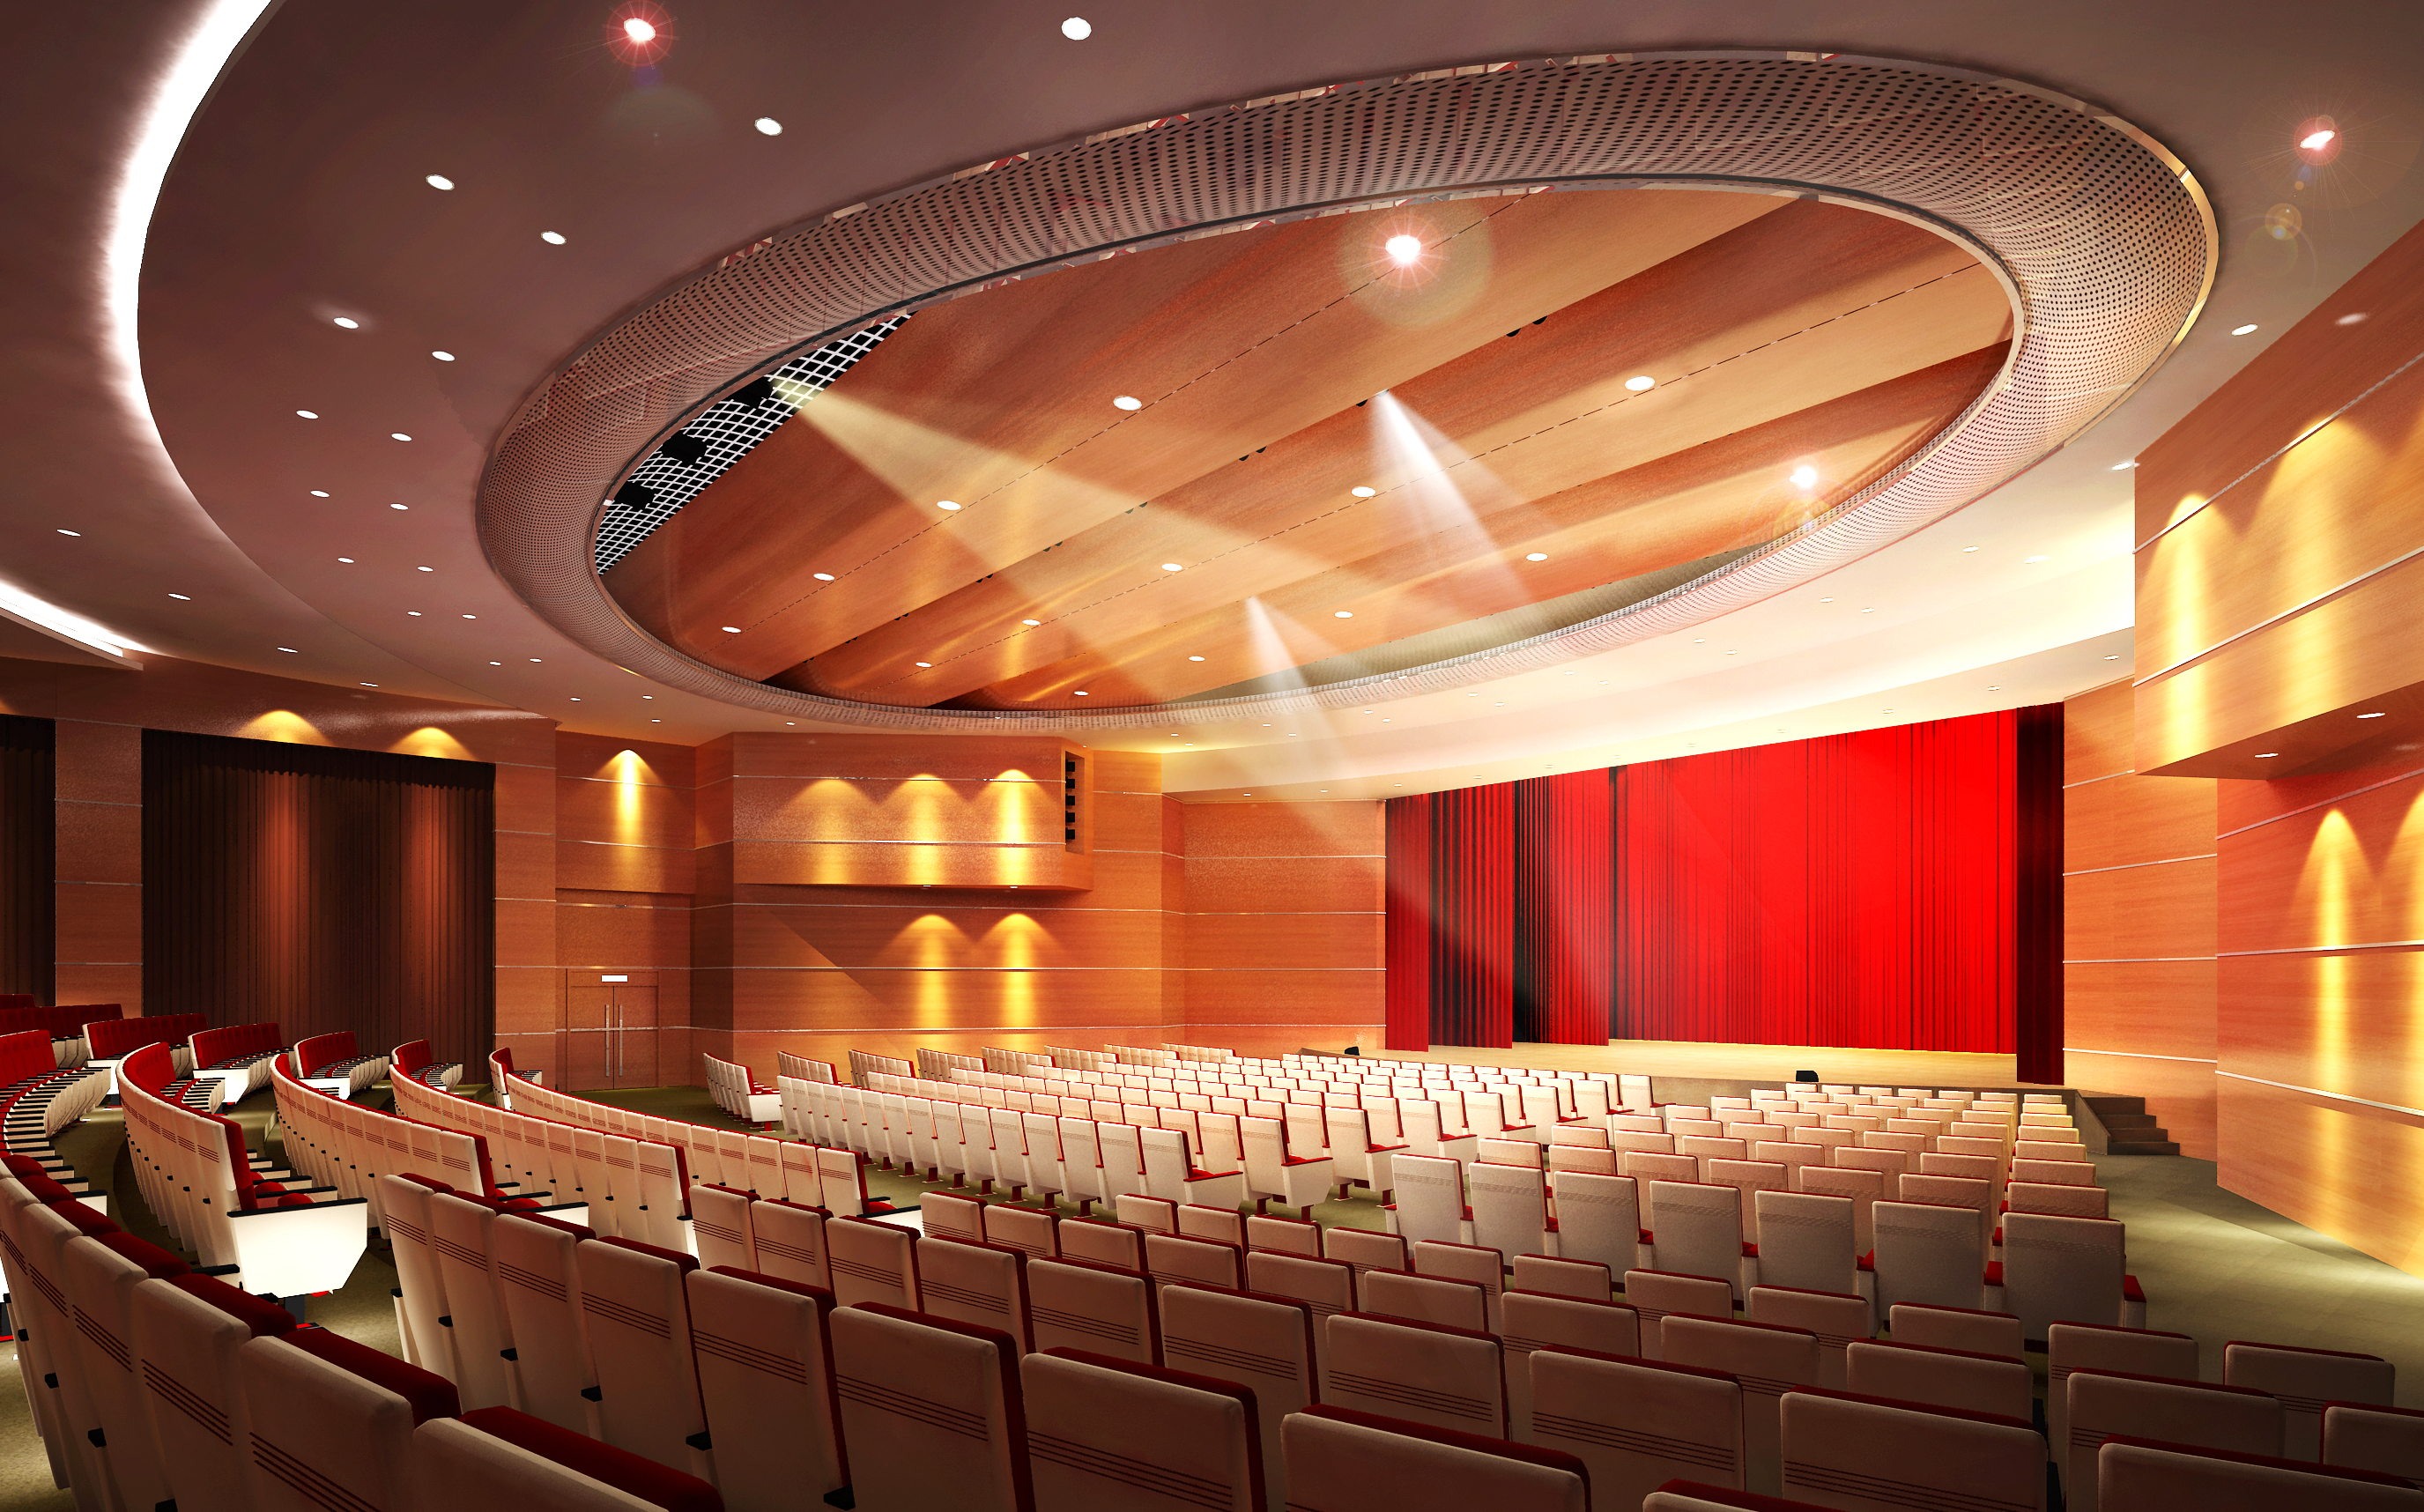 auditorium room008 3d model max 125233